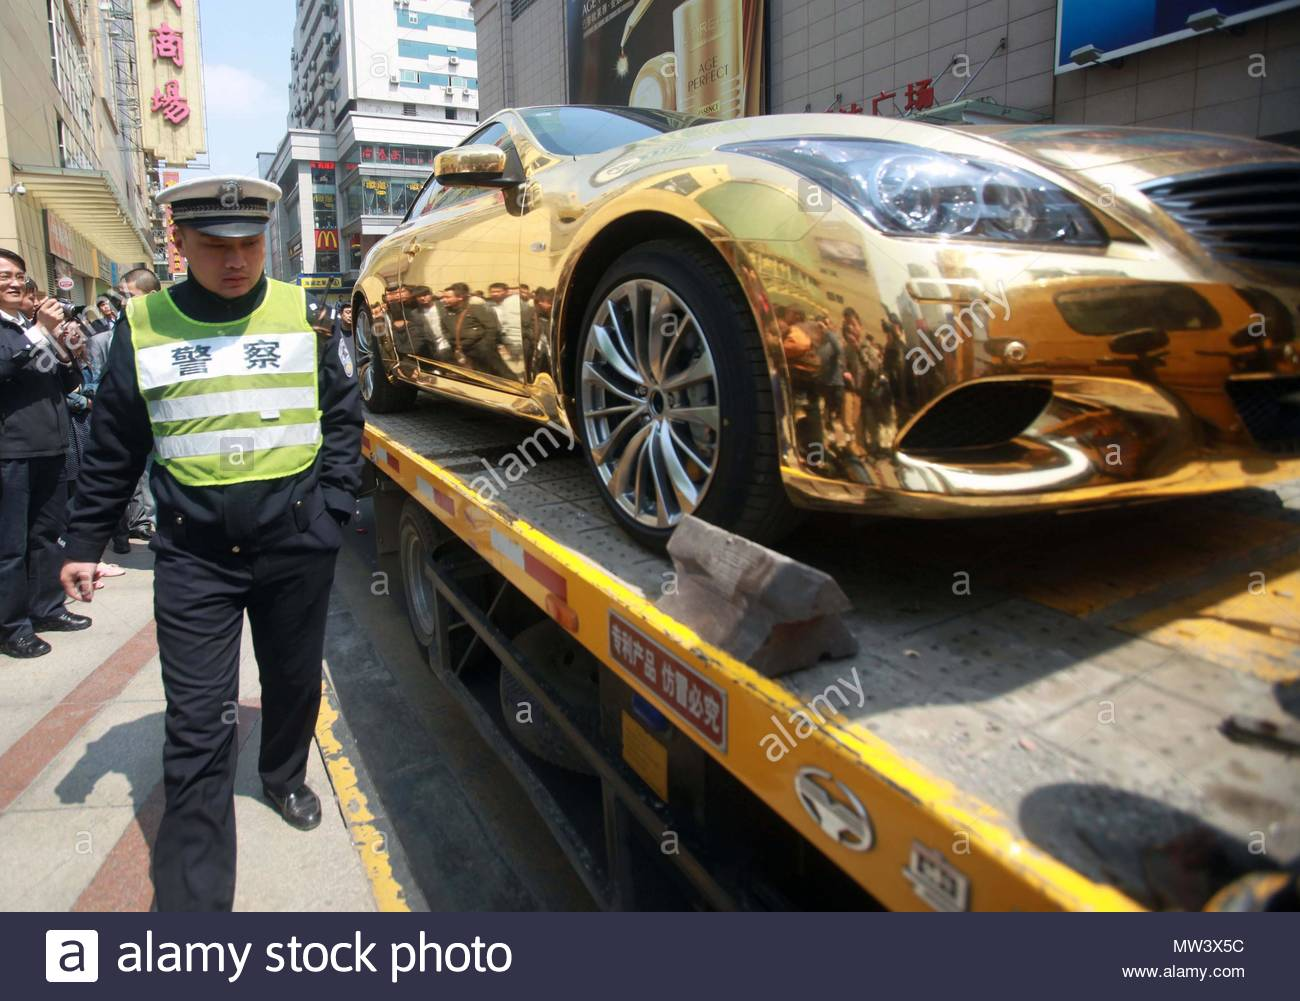 Gold Car This Gold Plated Sports Car Didn T Impress Traffic Wardens